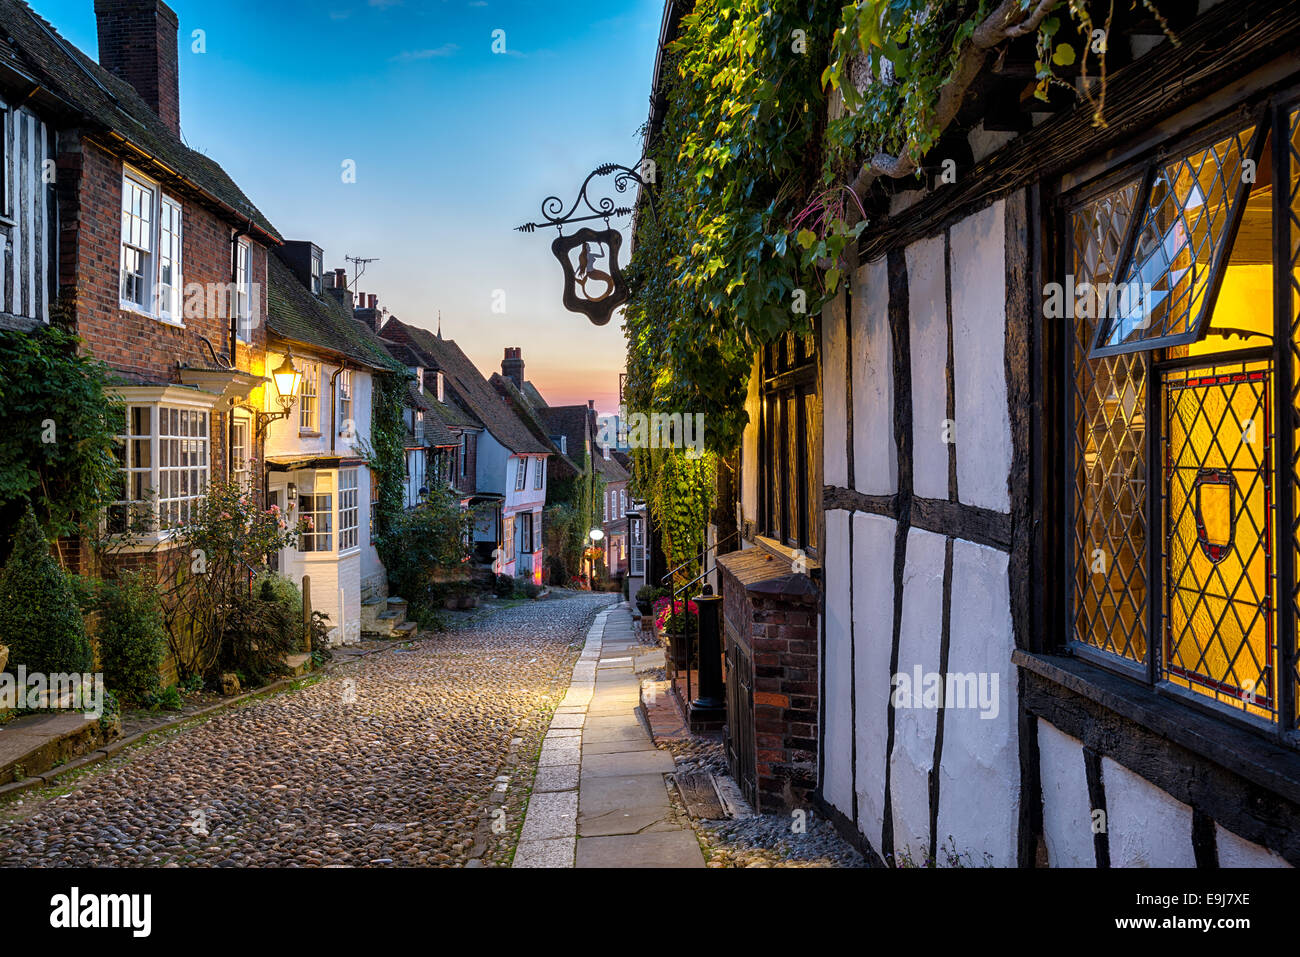 Dusk at a row of beautiful old houses on a cobbled street in Rye, East sussex - Stock Image